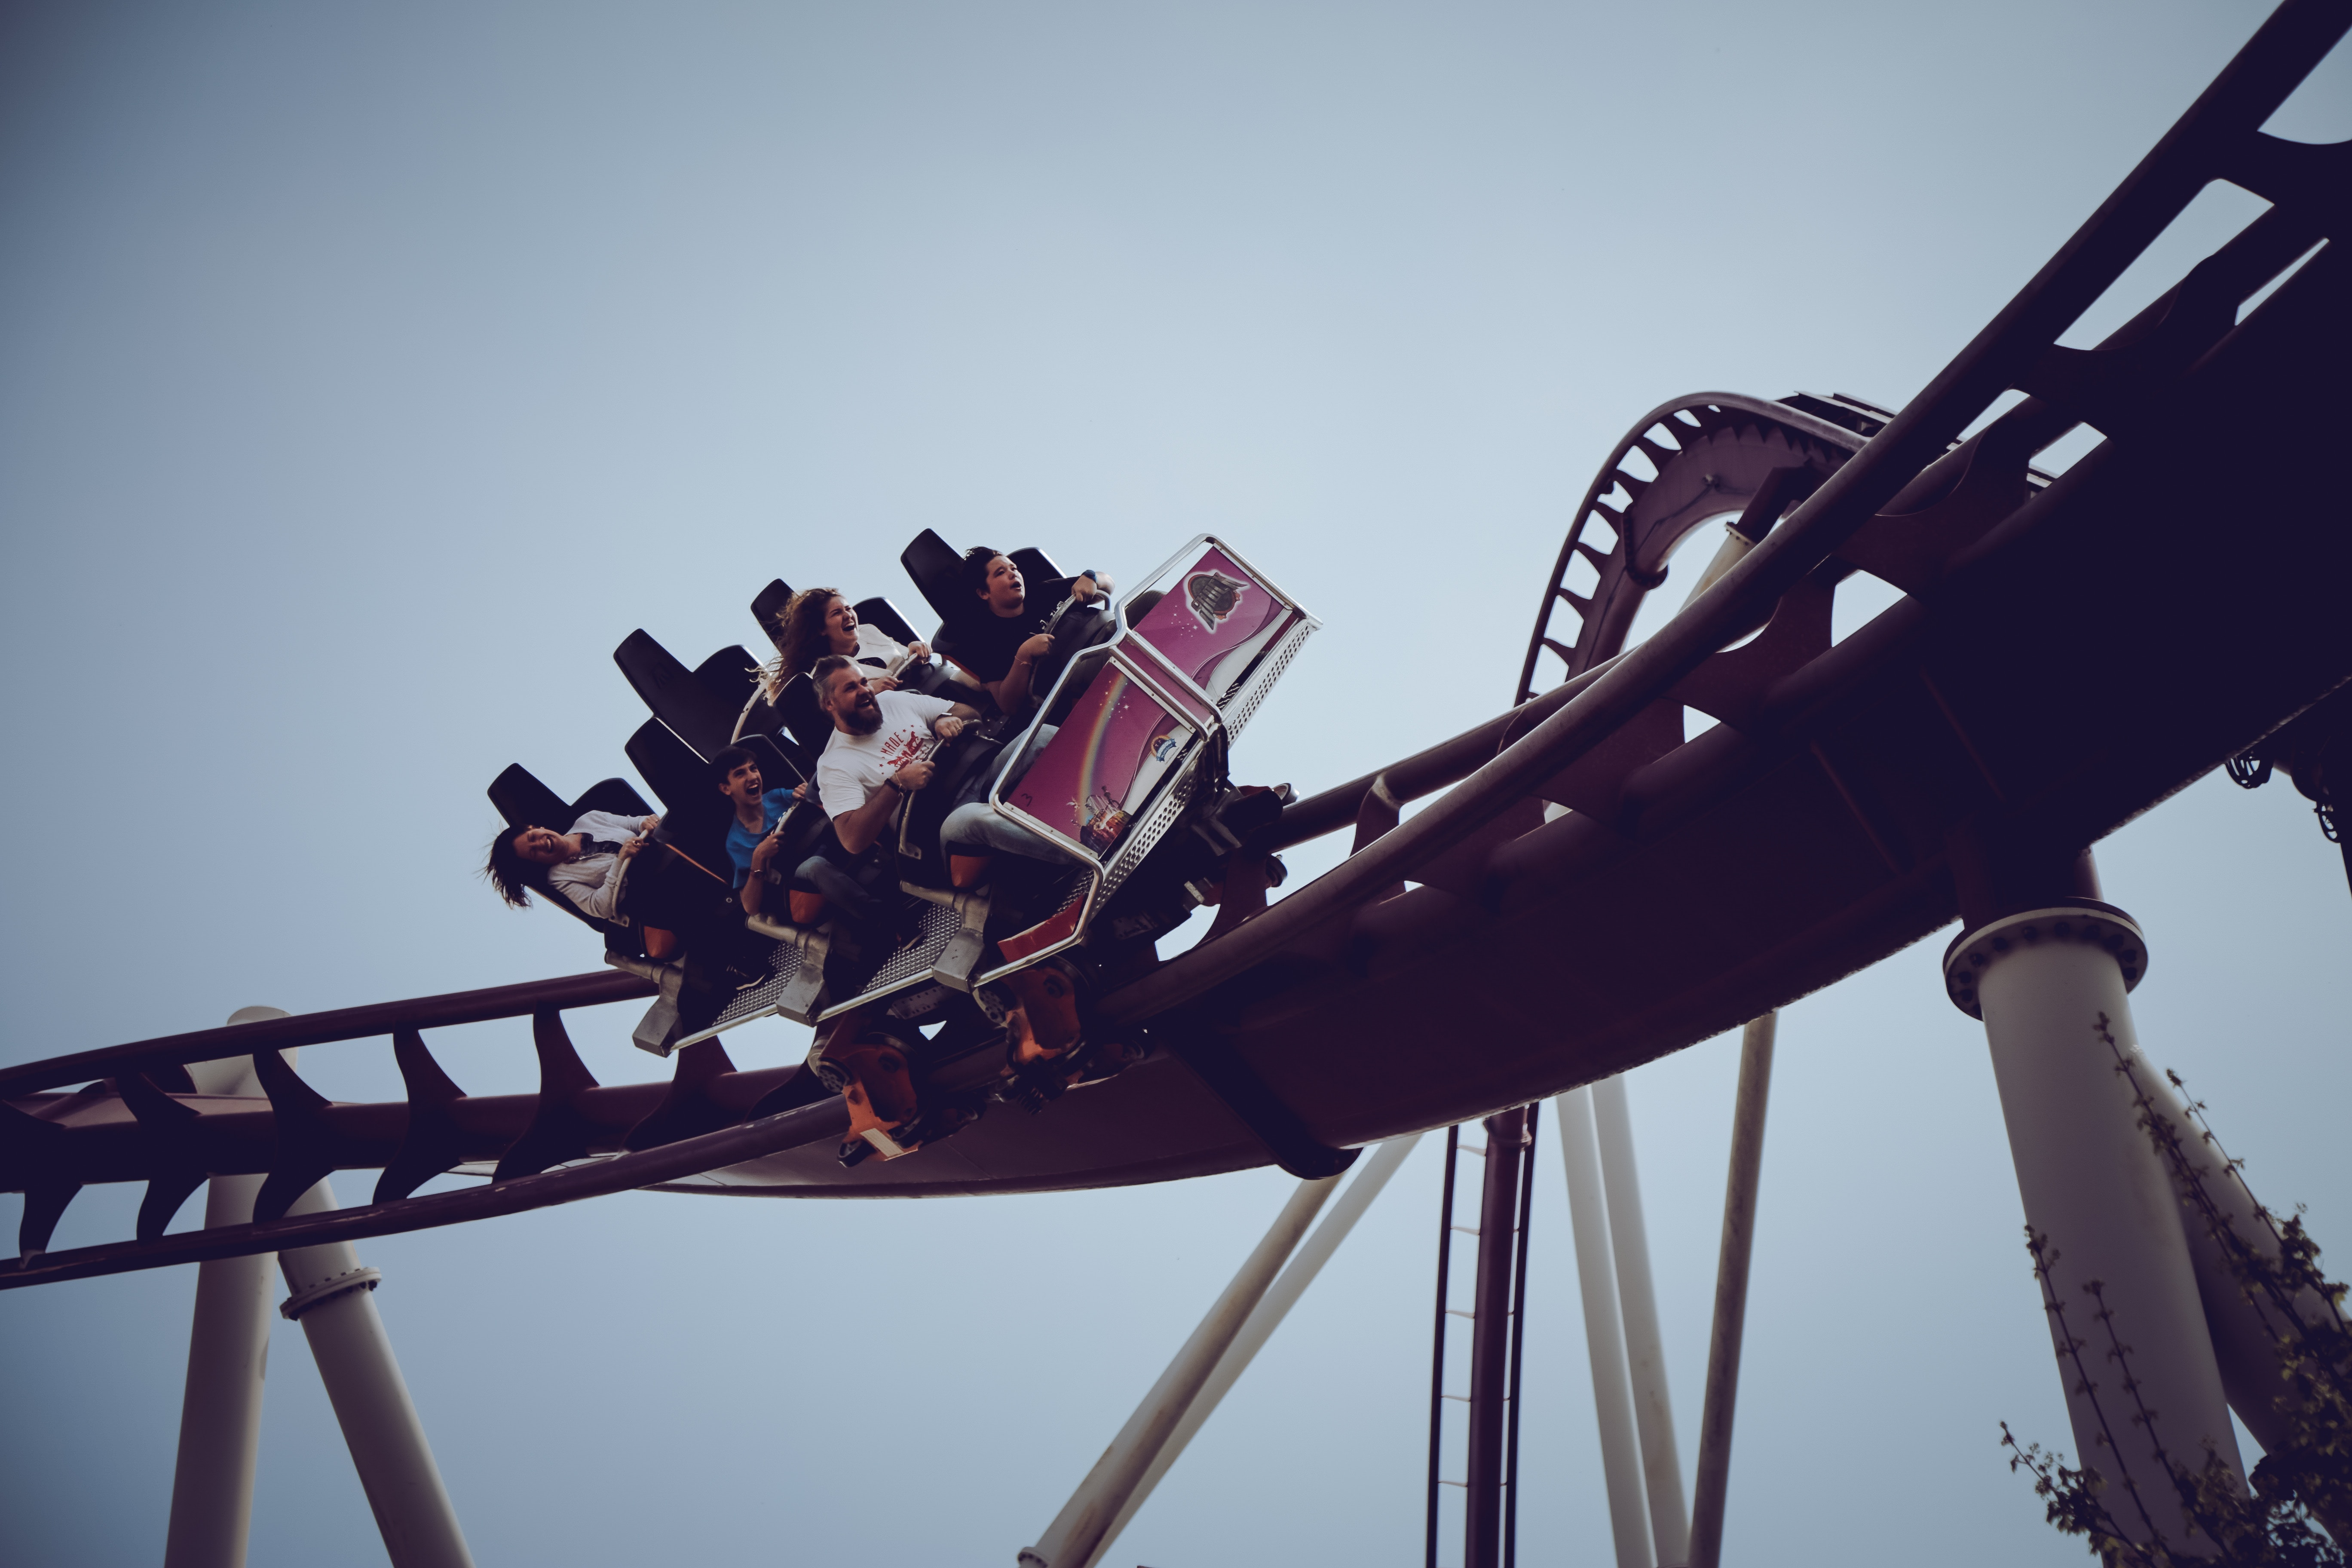 Surviving the rollercoaster